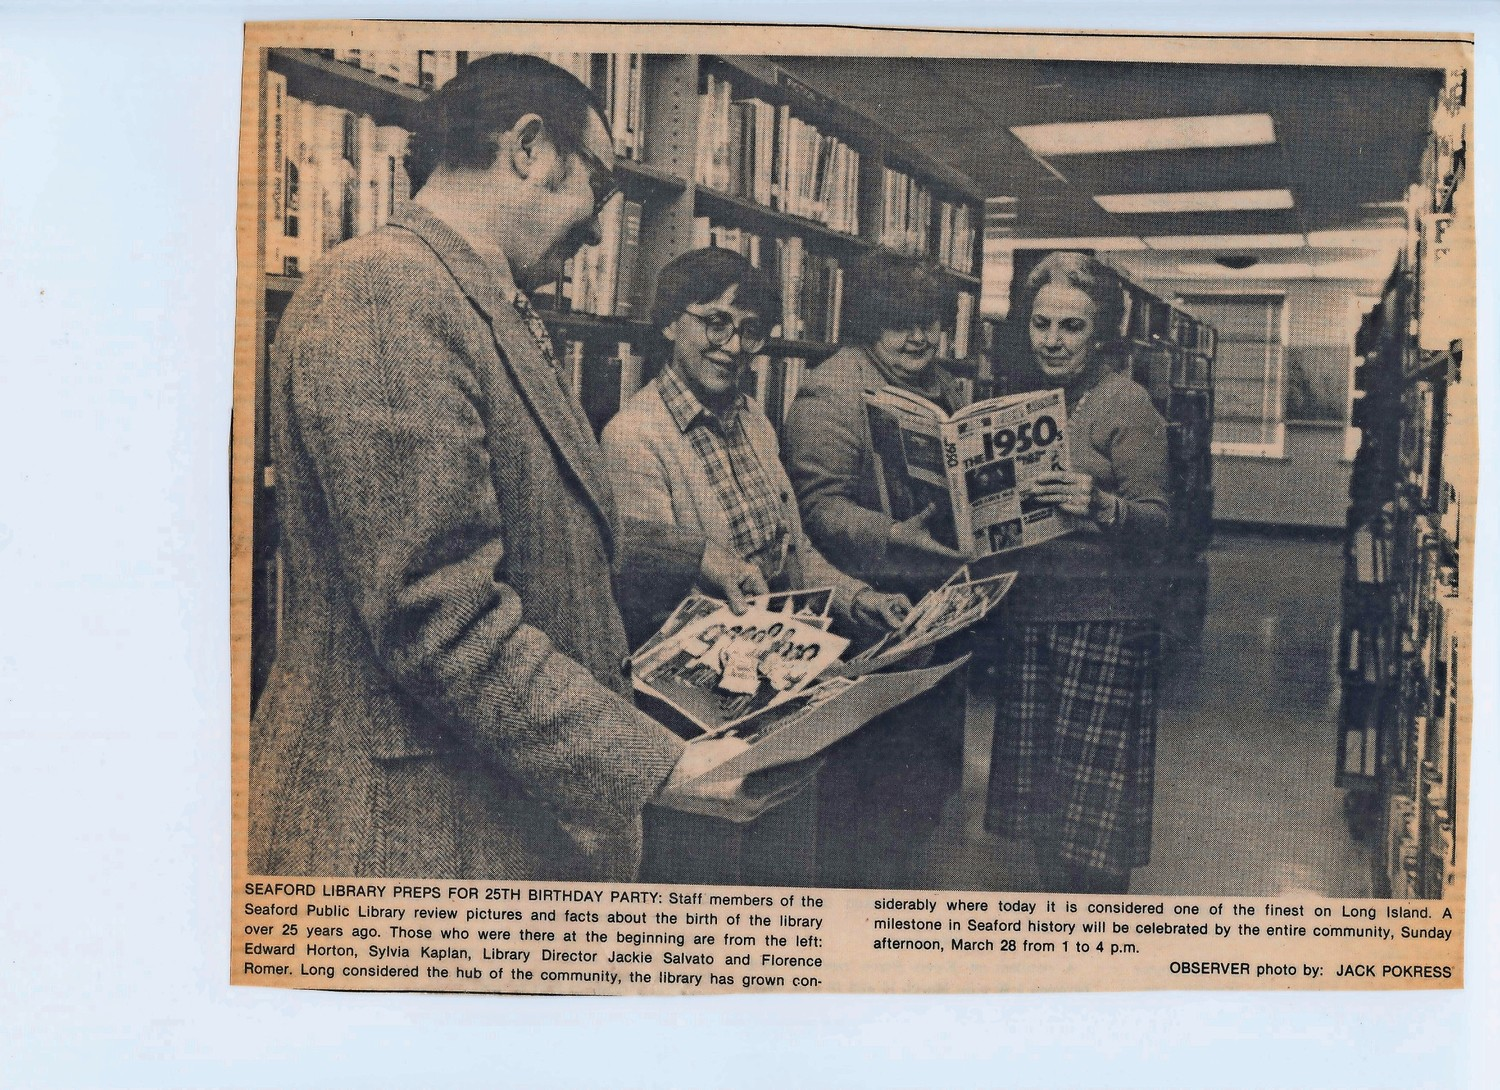 Edward Horton, Sylvia Kaplan, former Library Director Jacqueline Salvato and Florence Romer reviewed photos and facts about the library before its 25th birthday party.